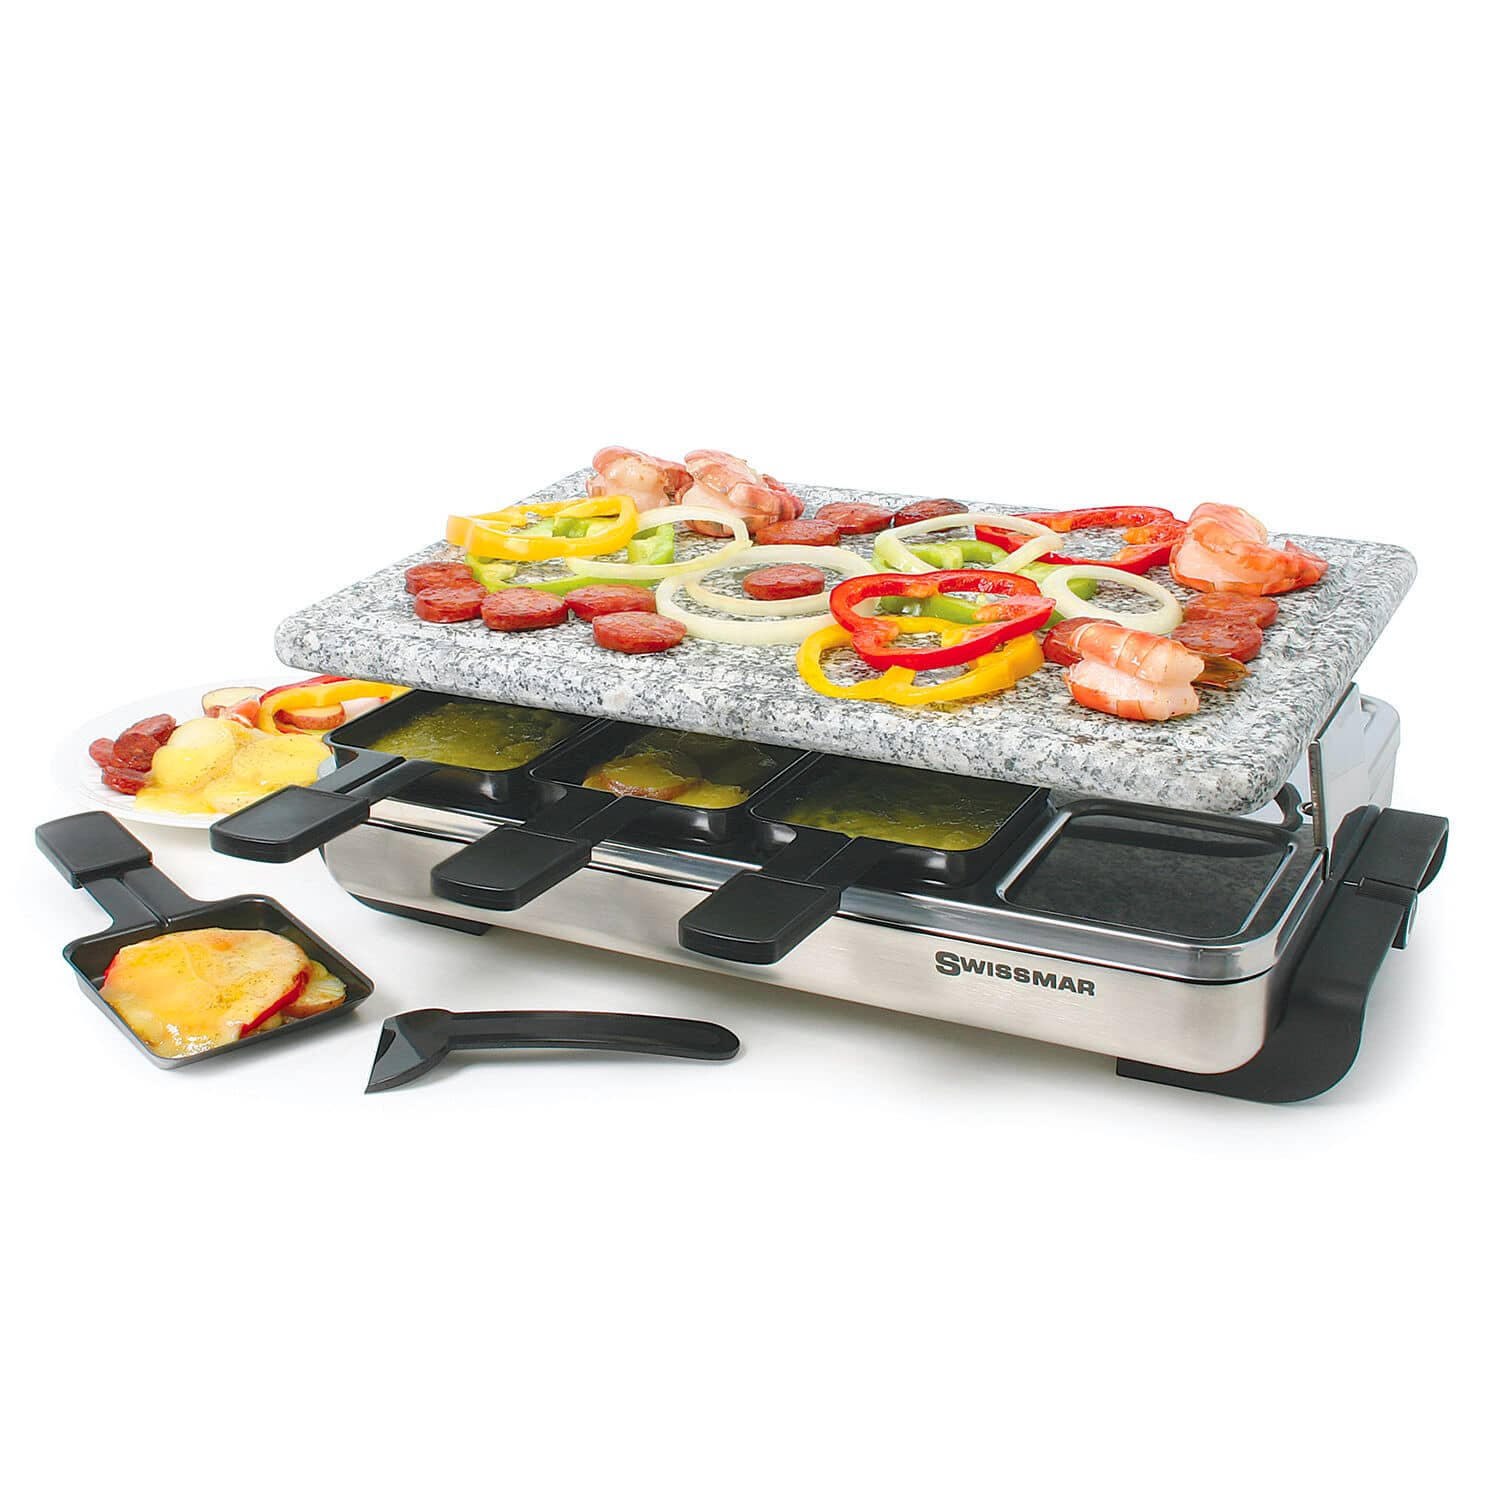 swissmar stelvio raclette granite stone party grill. Black Bedroom Furniture Sets. Home Design Ideas